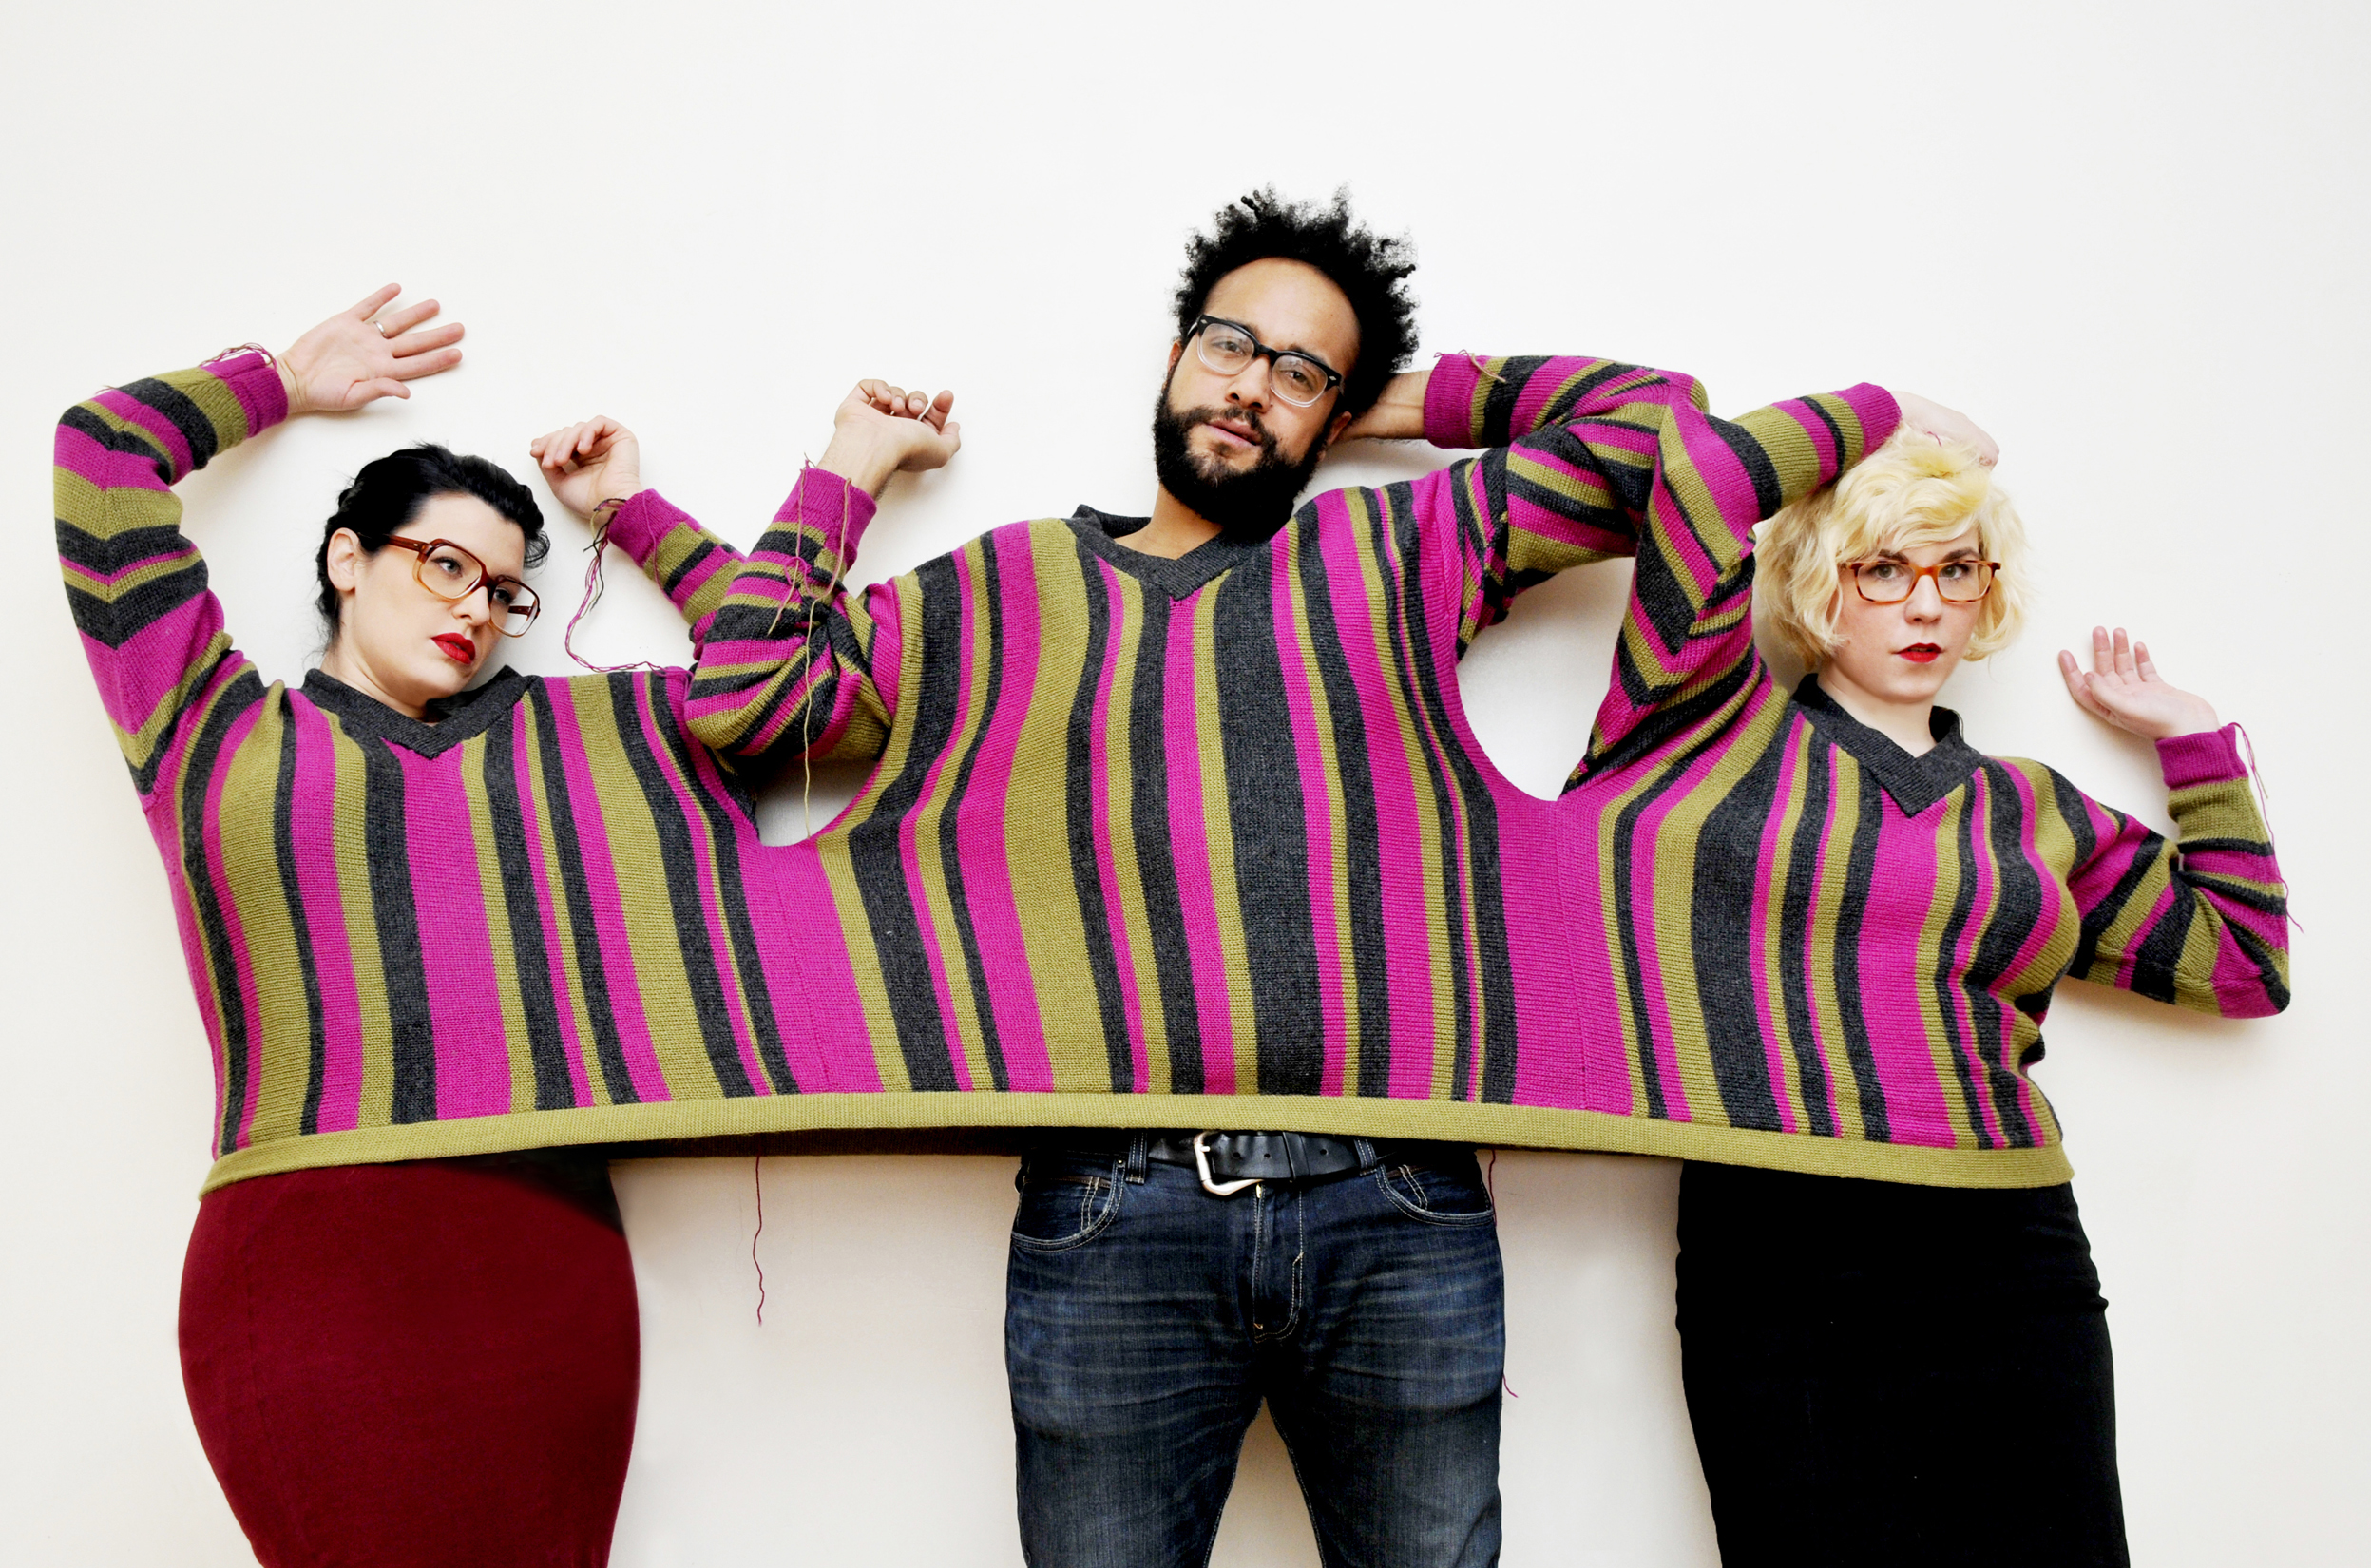 """Darlings Sweater // Pearl and the Beard """" Killing the Darlings """" Album Cover // Brooklyn, NY 2011   Garment Design and Production"""